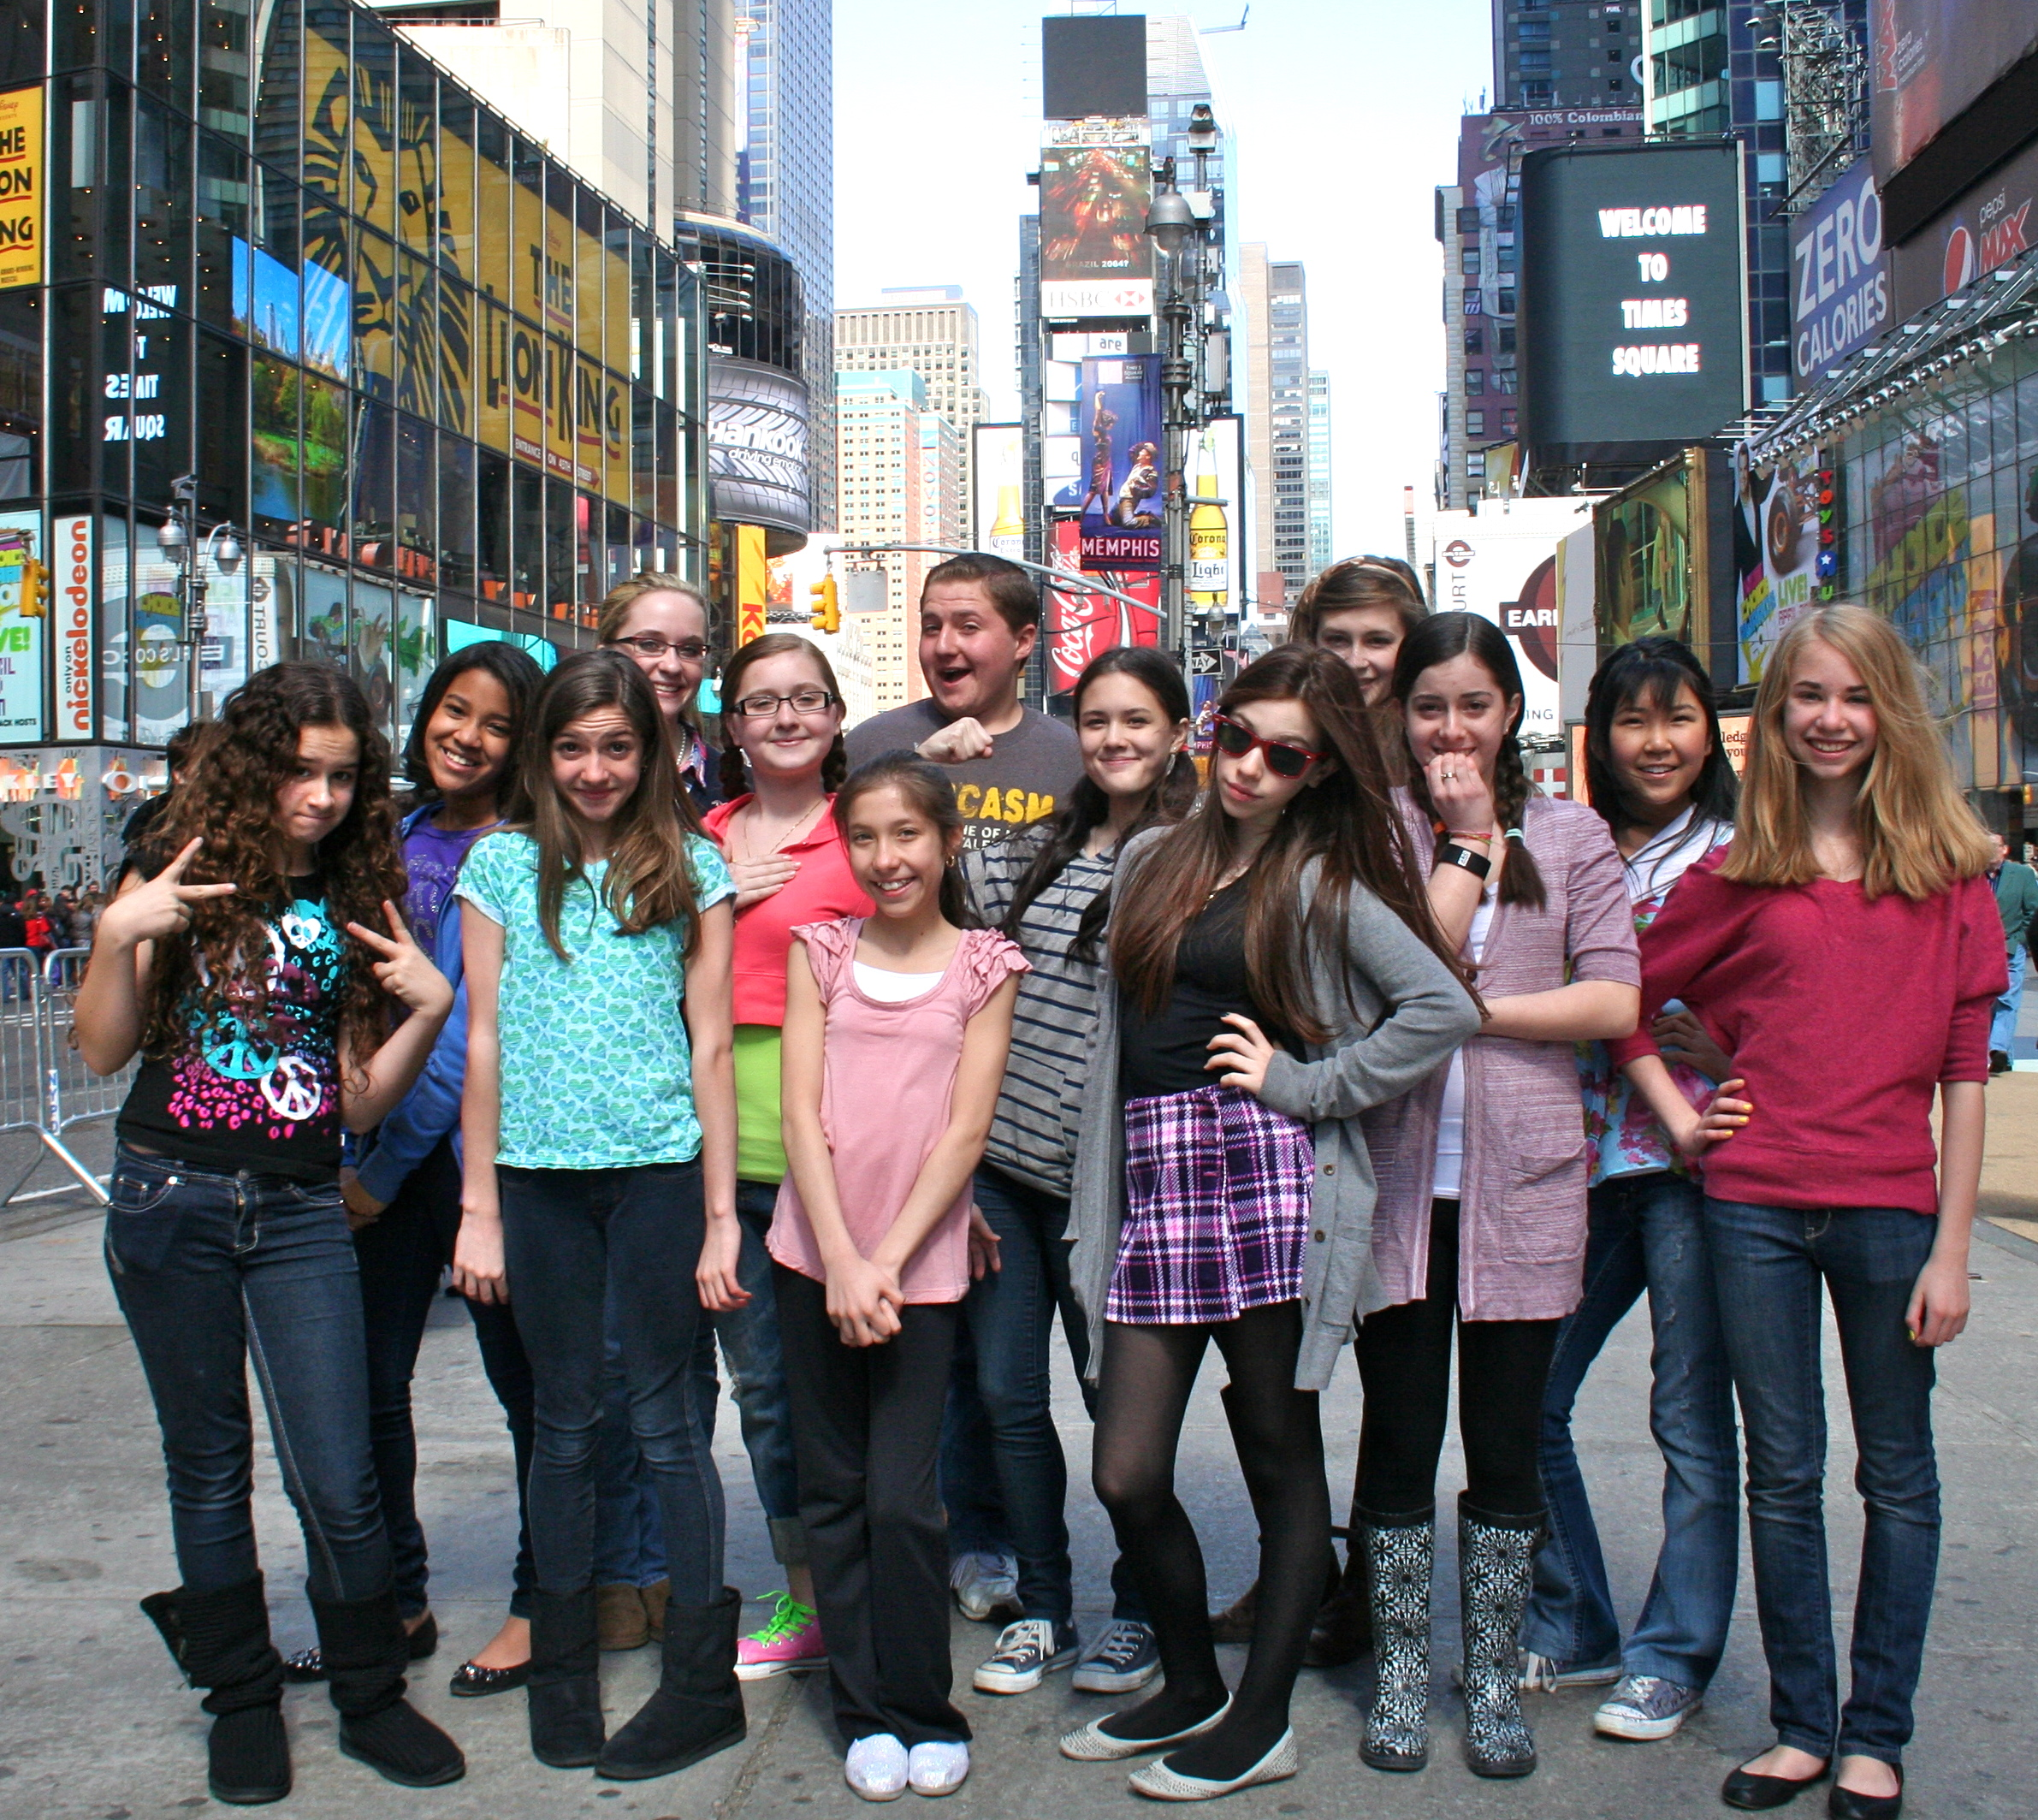 The 2011 cast of Helen on 86th St. in Times Square